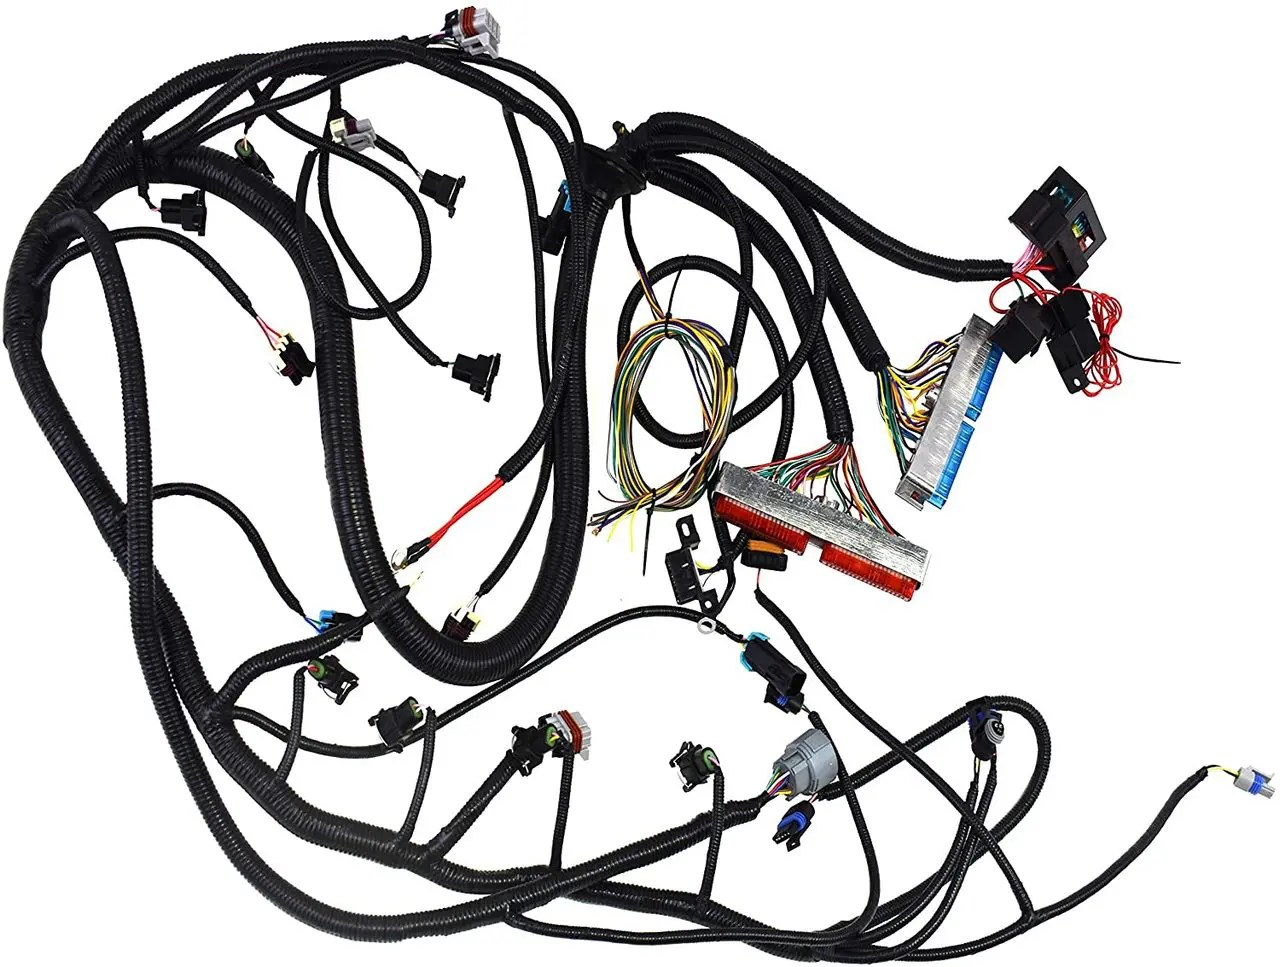 A-Team Performance Standalone Wiring Harness W/4L60E DBC